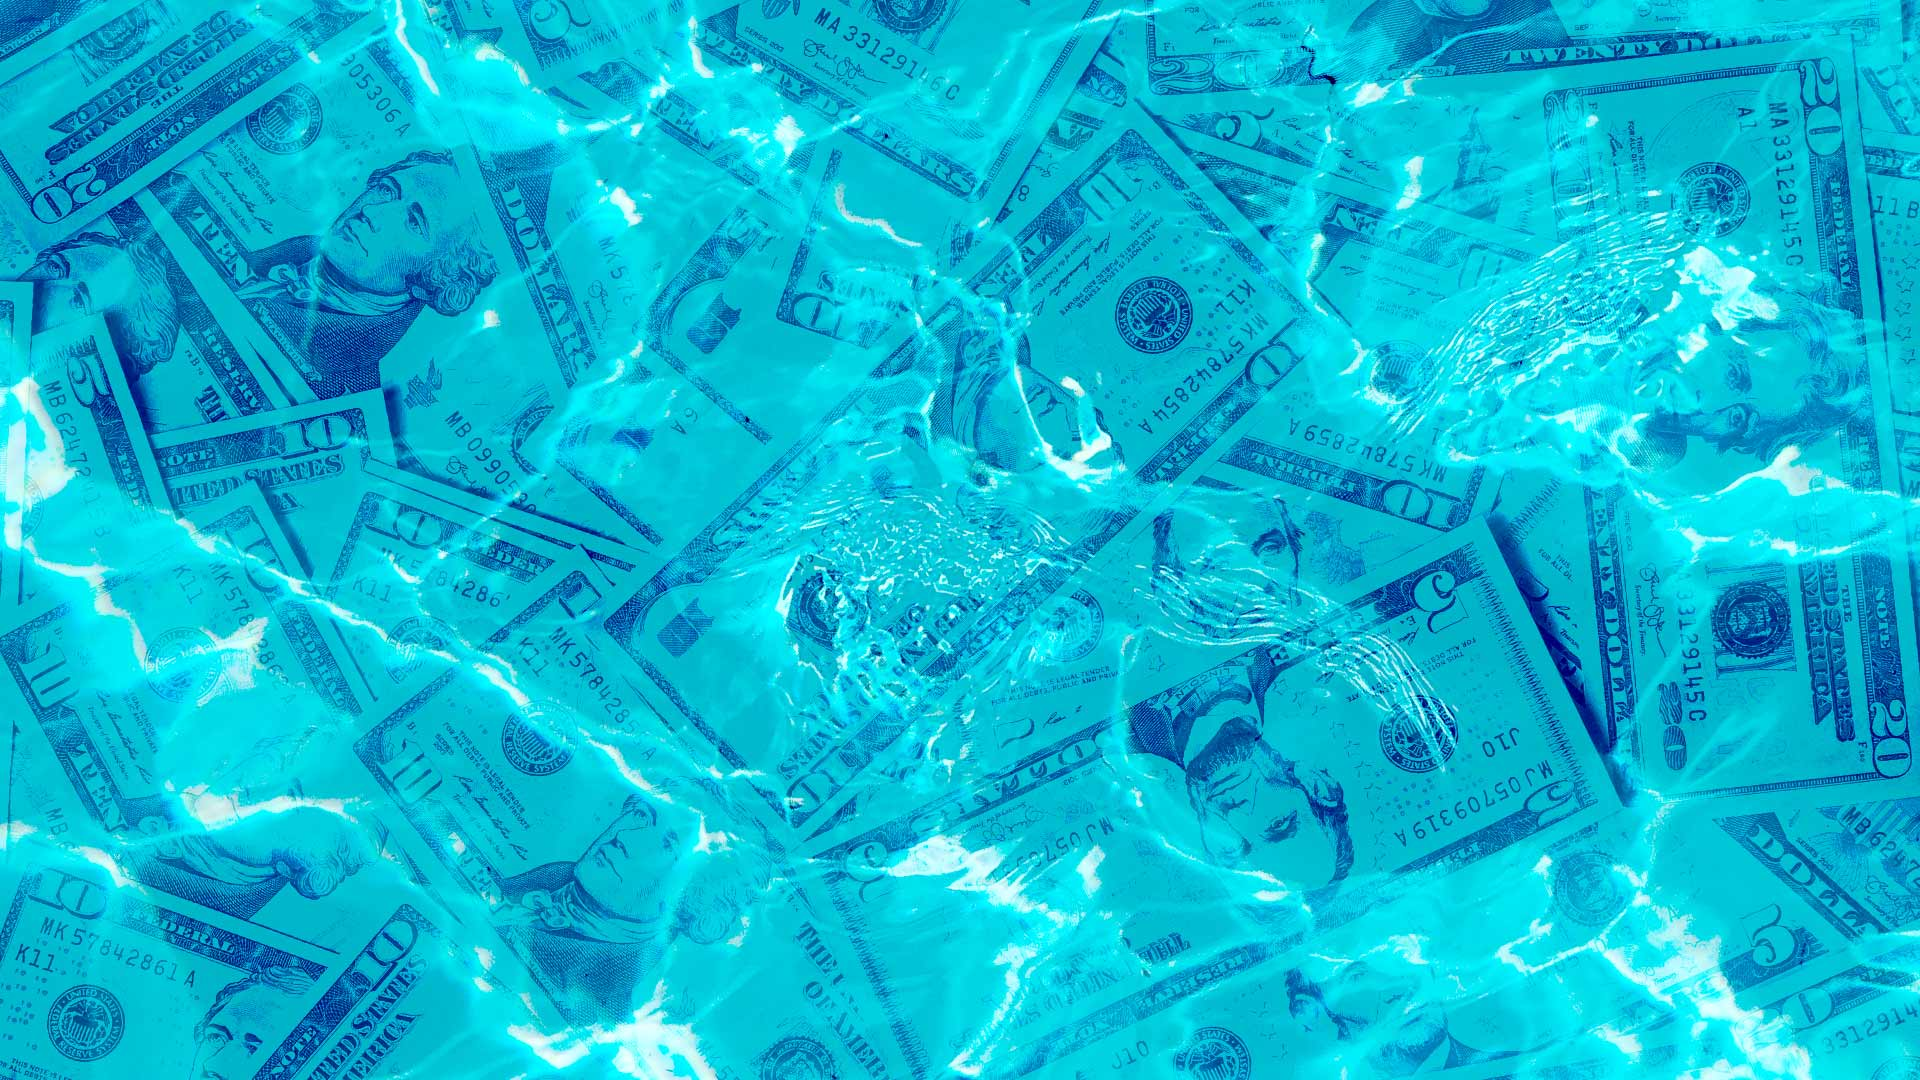 Stacks of US currency float underneath the surface of a shiny blue swimming pool, with a splash in the middle.